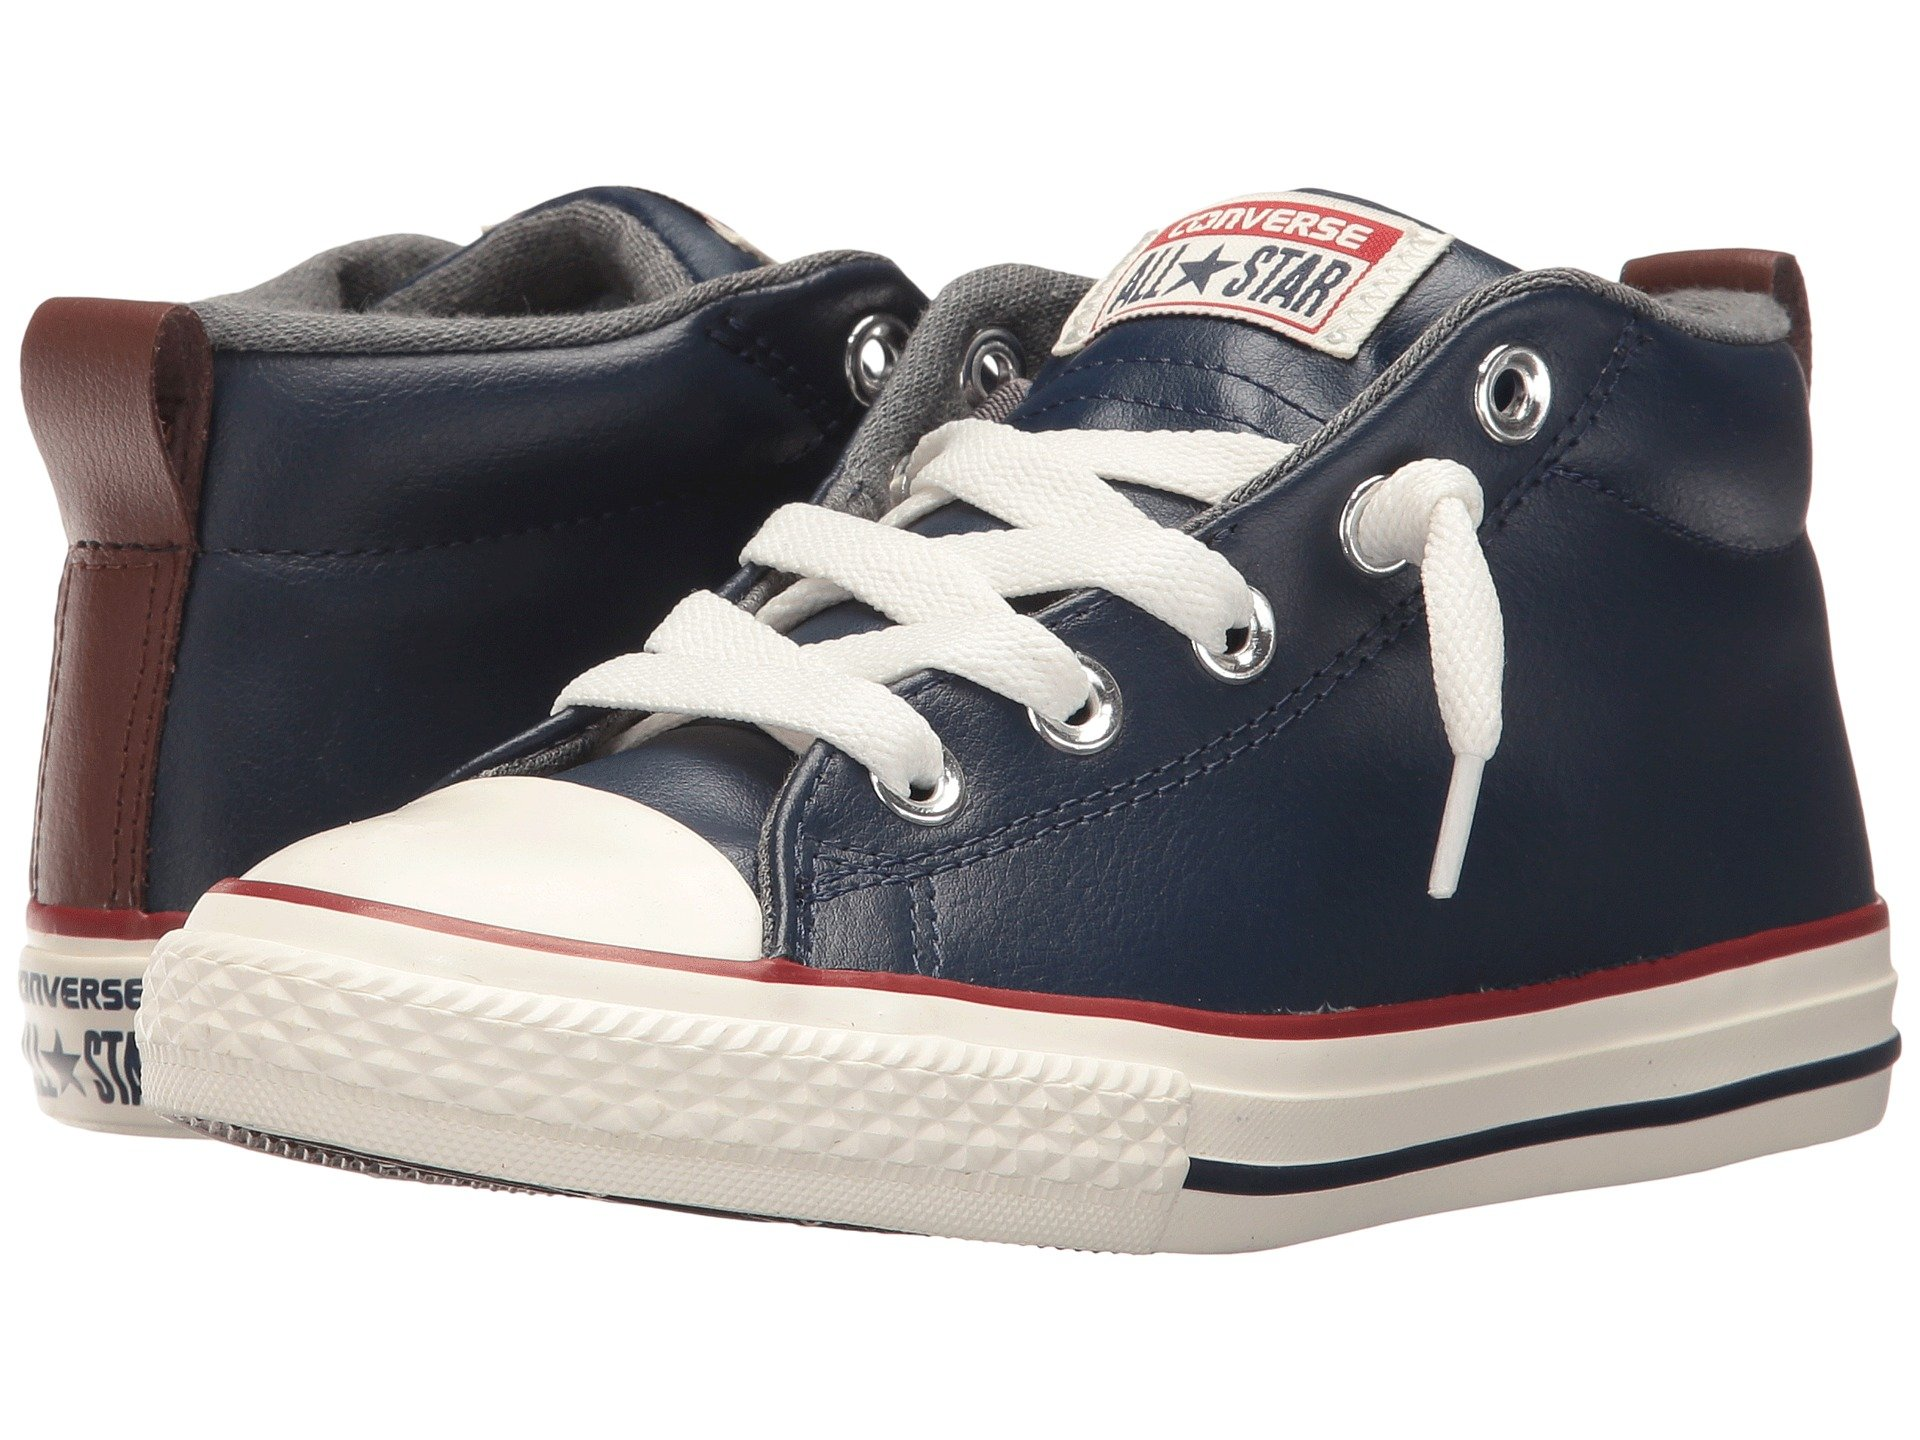 converse for kids. view more like this converse kids - chuck taylor all star street leather and fleece mid (little kid/ for